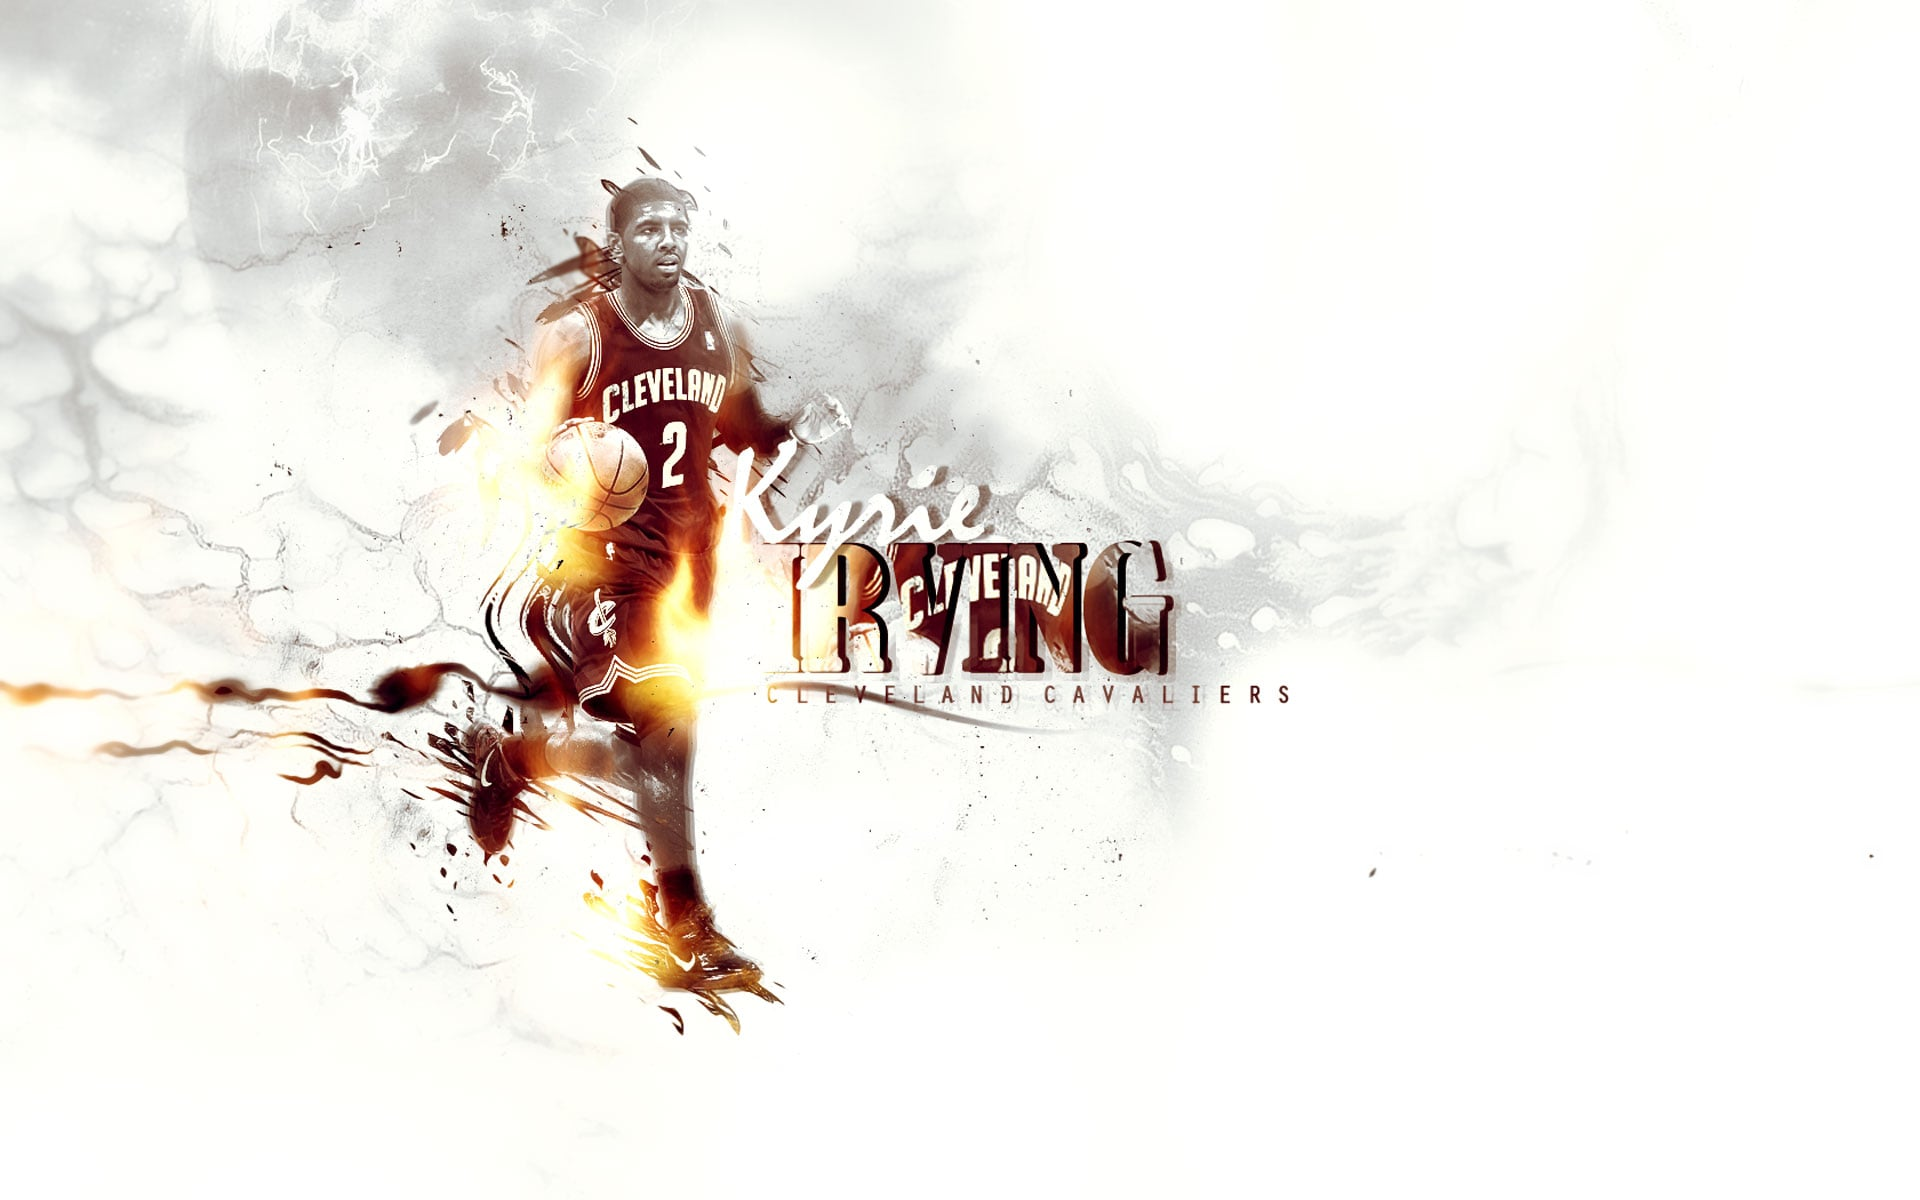 17 kyrie irving wallpapers hd logo cleveland cavs